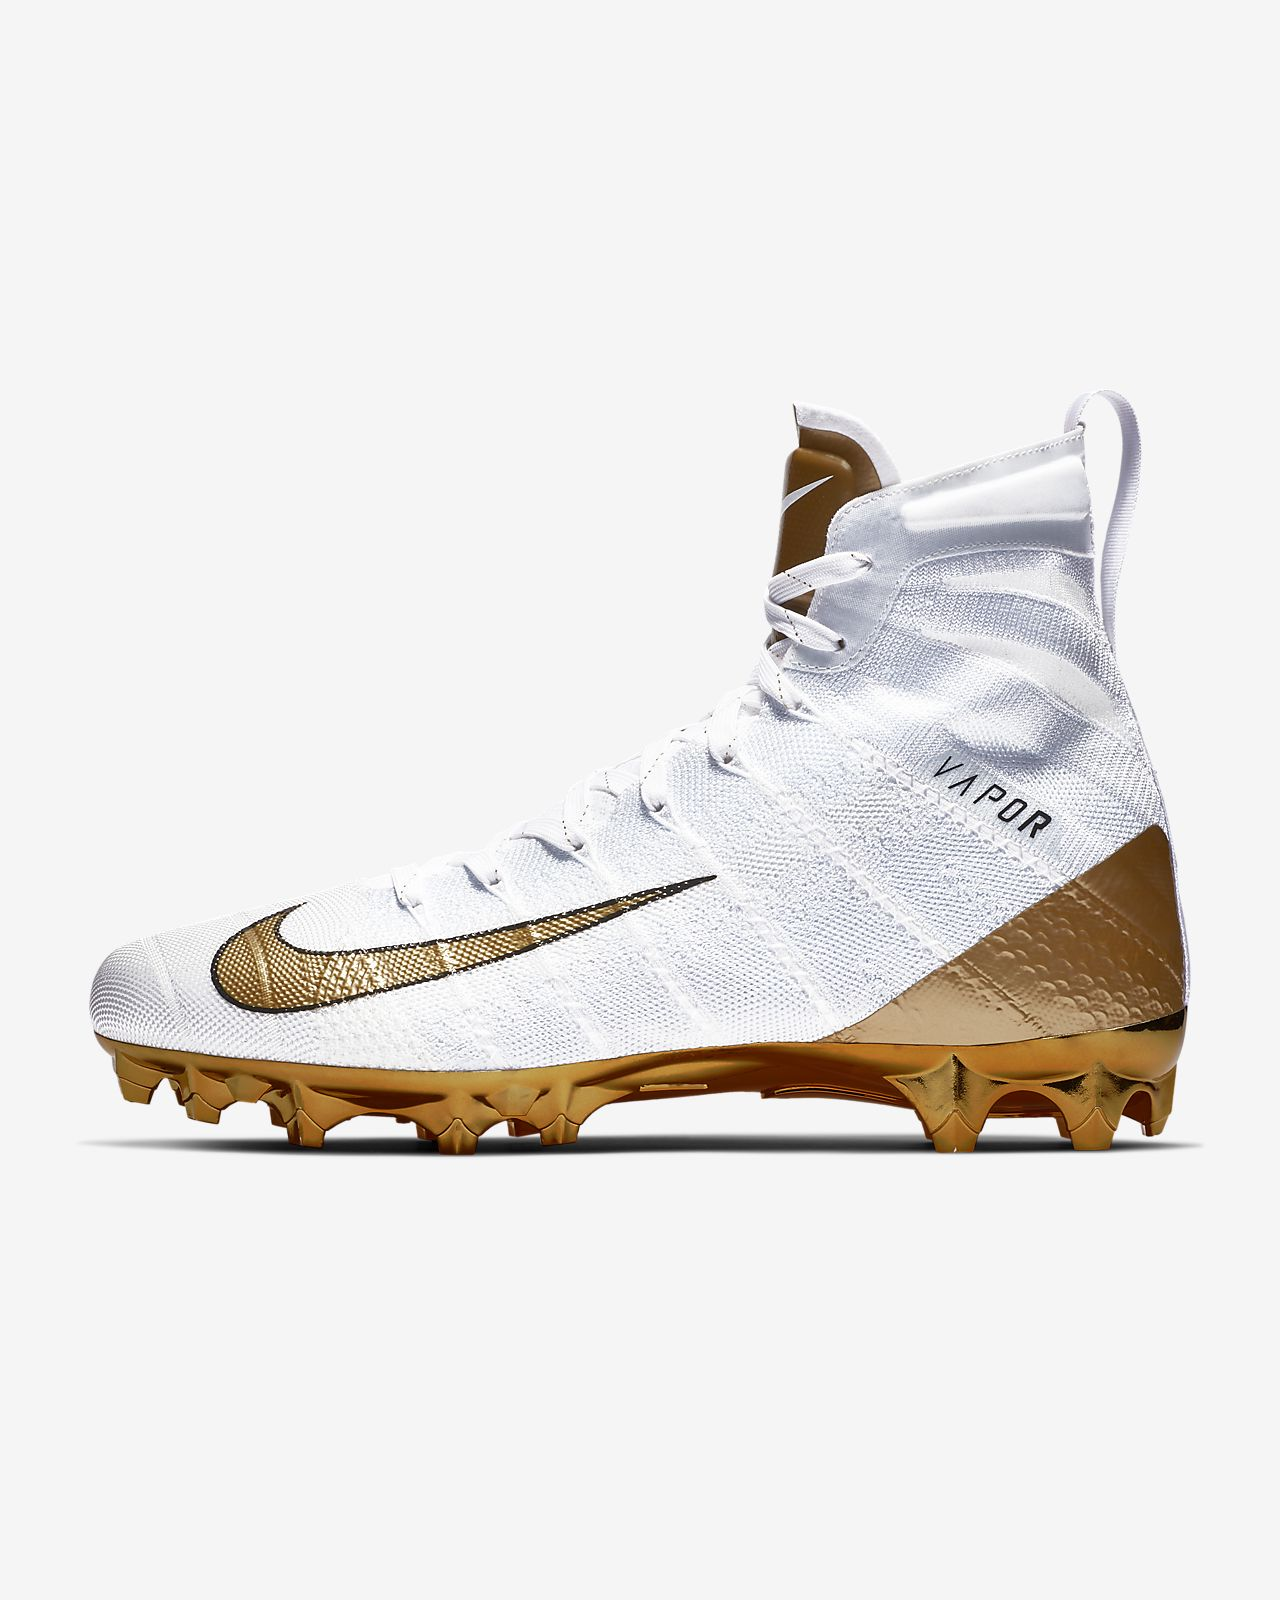 Nike Vapor Untouchable 3 Elite Football Cleat. Nike.com 0ba77d79d